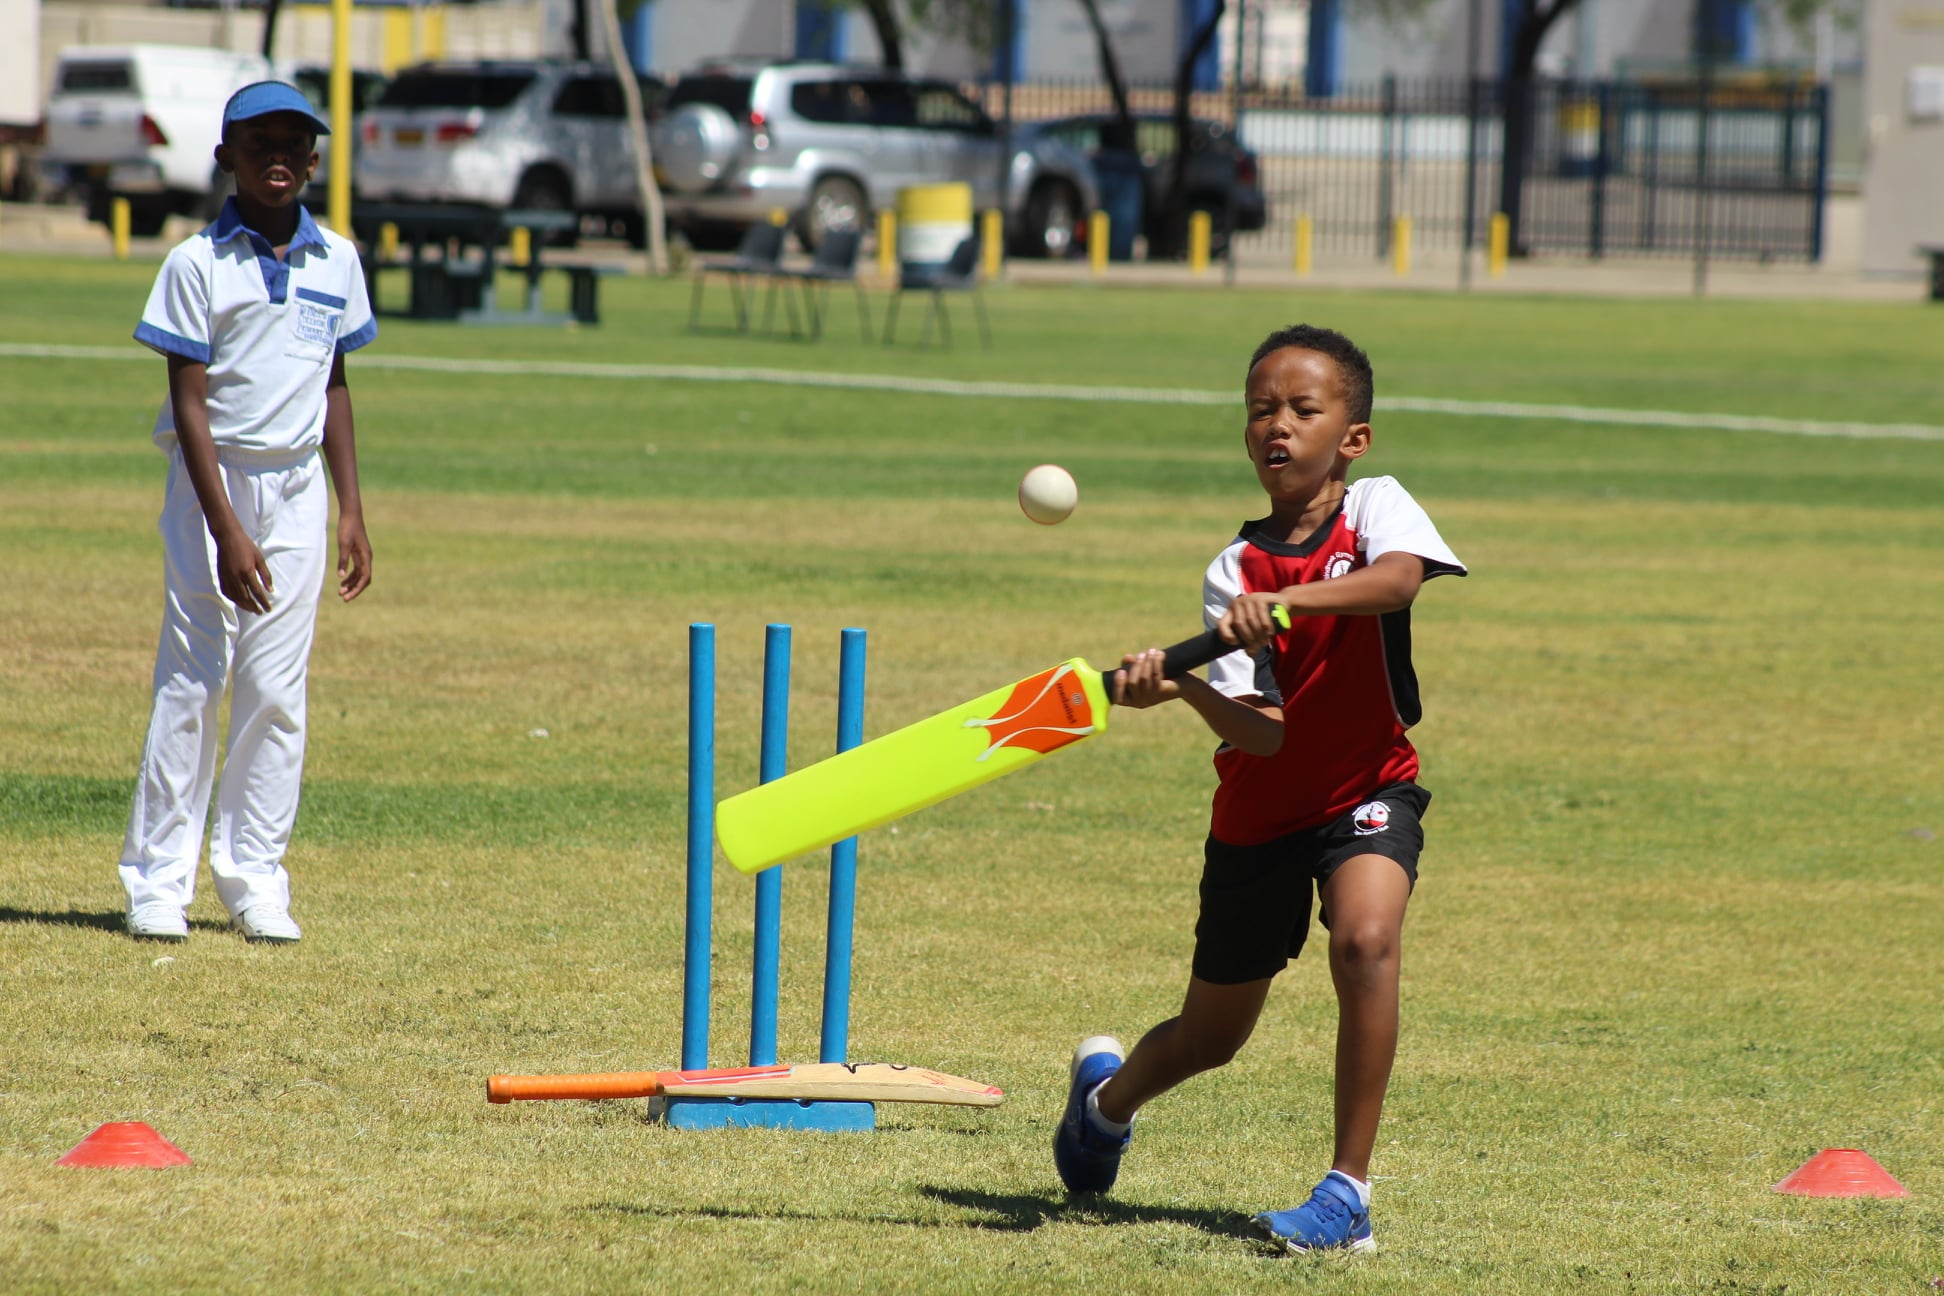 Junior cricket tourney providing rare opportunities